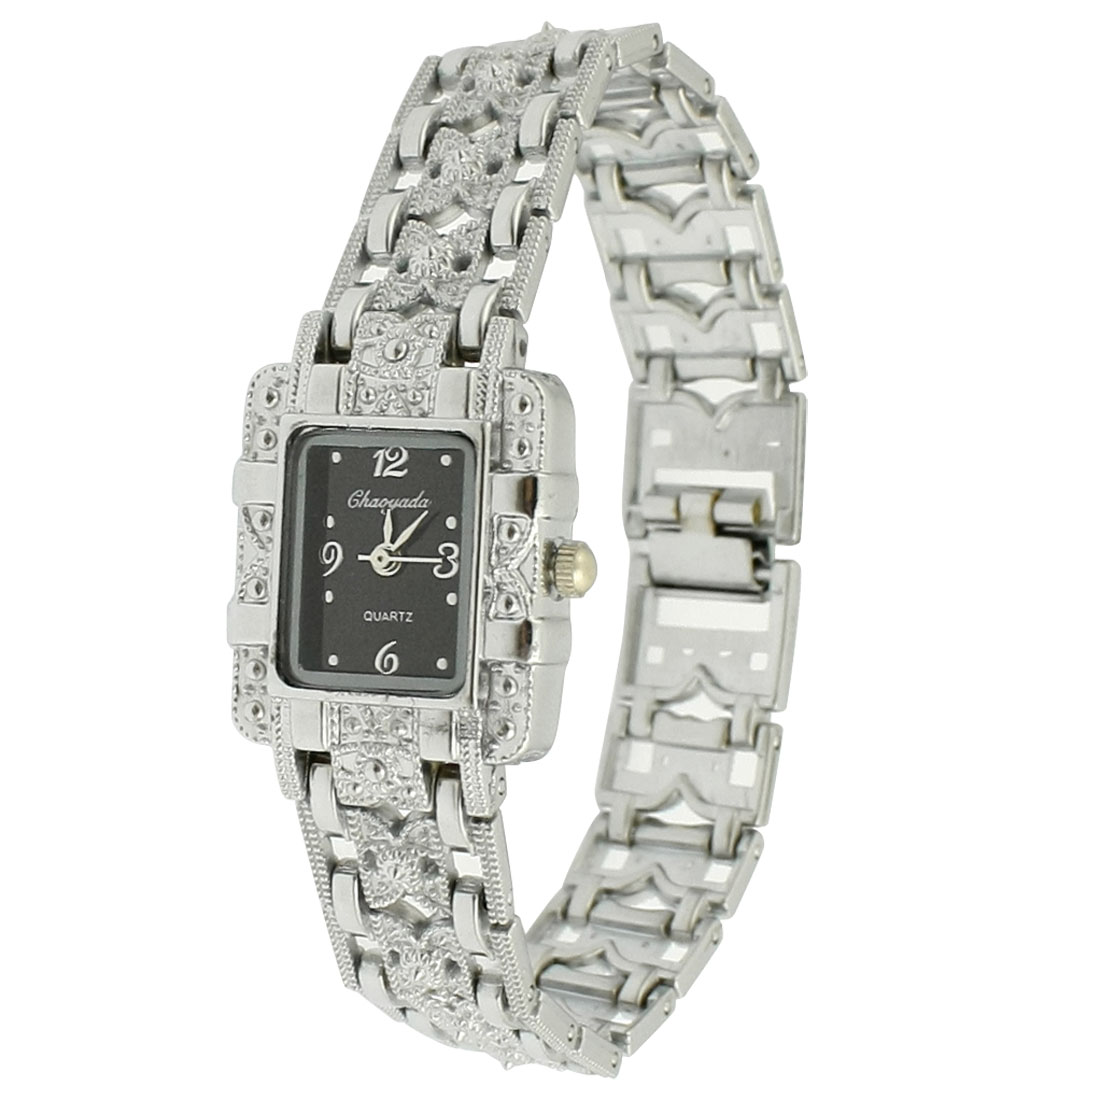 Lady Silver Tone Hollow Out Design Band Black Rectangle Dial Case Wrist Watch